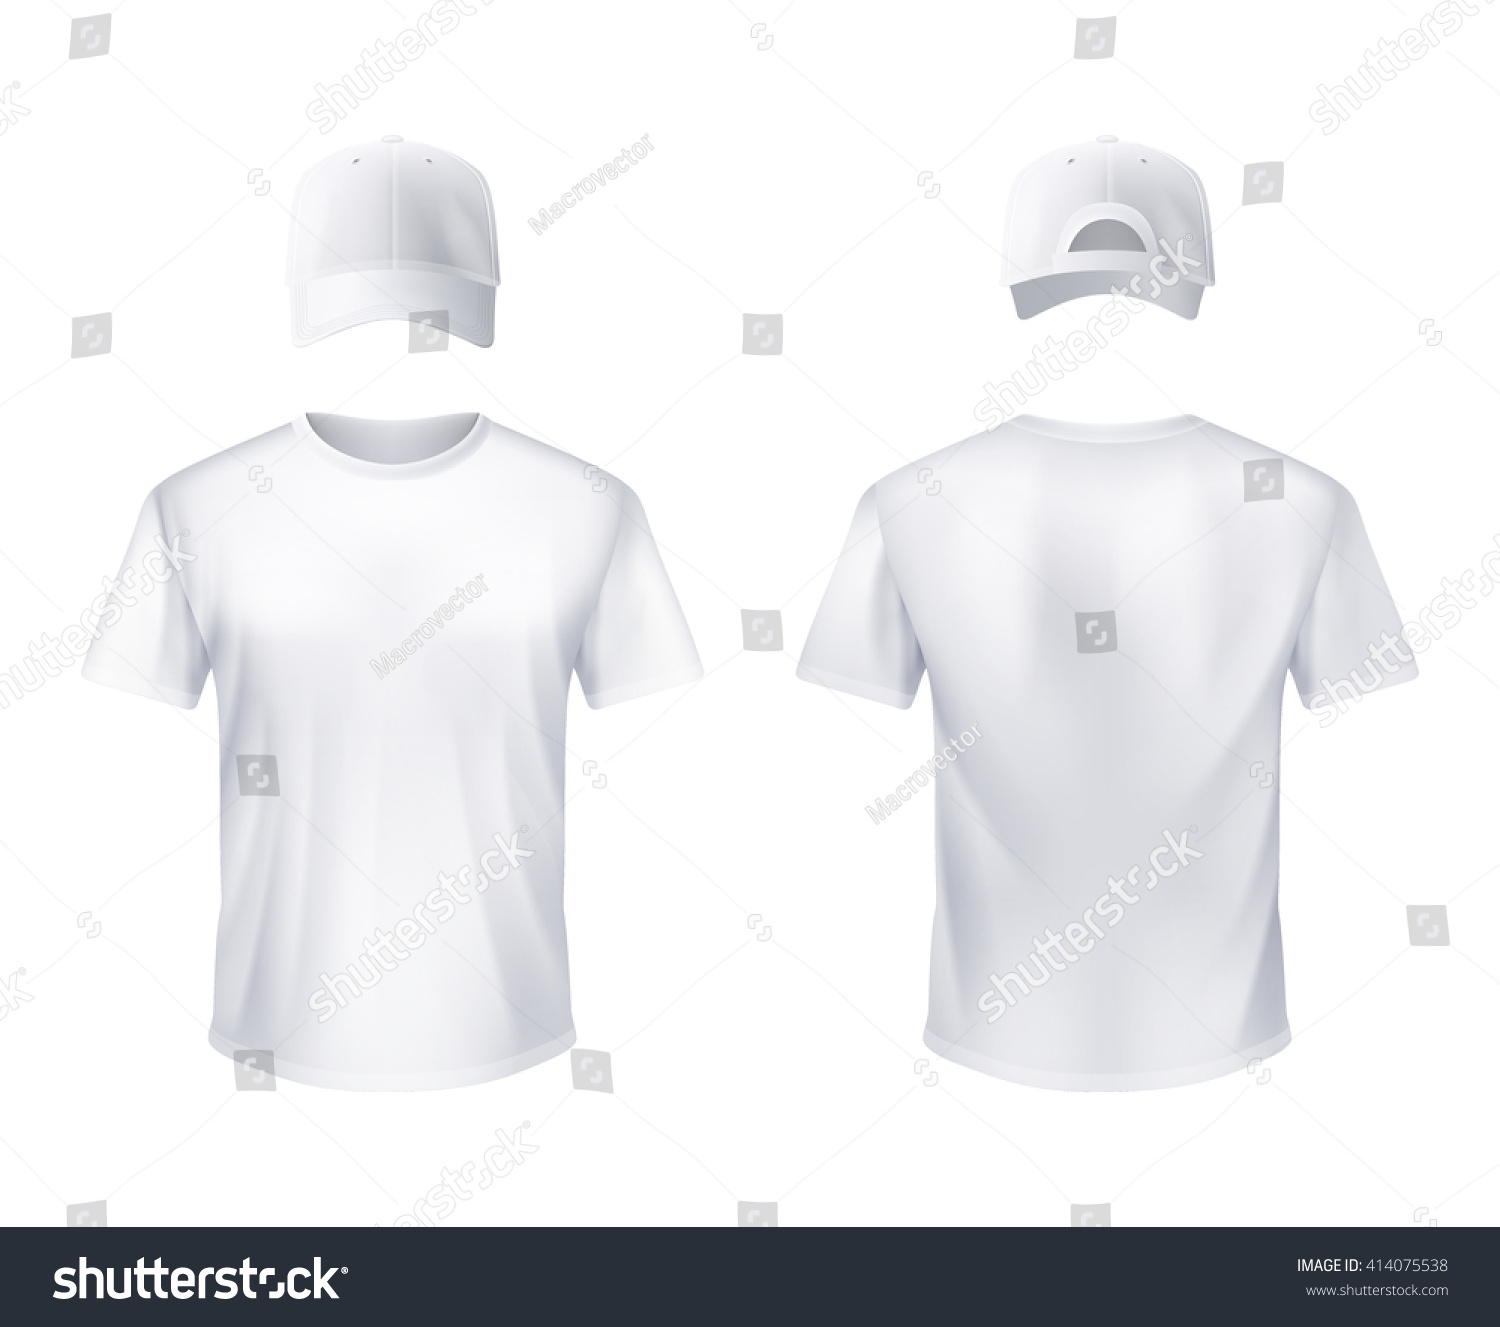 White t shirt for design - White T Shirt And Baseball Cap Front And Back Views Set Realistic Design For Men